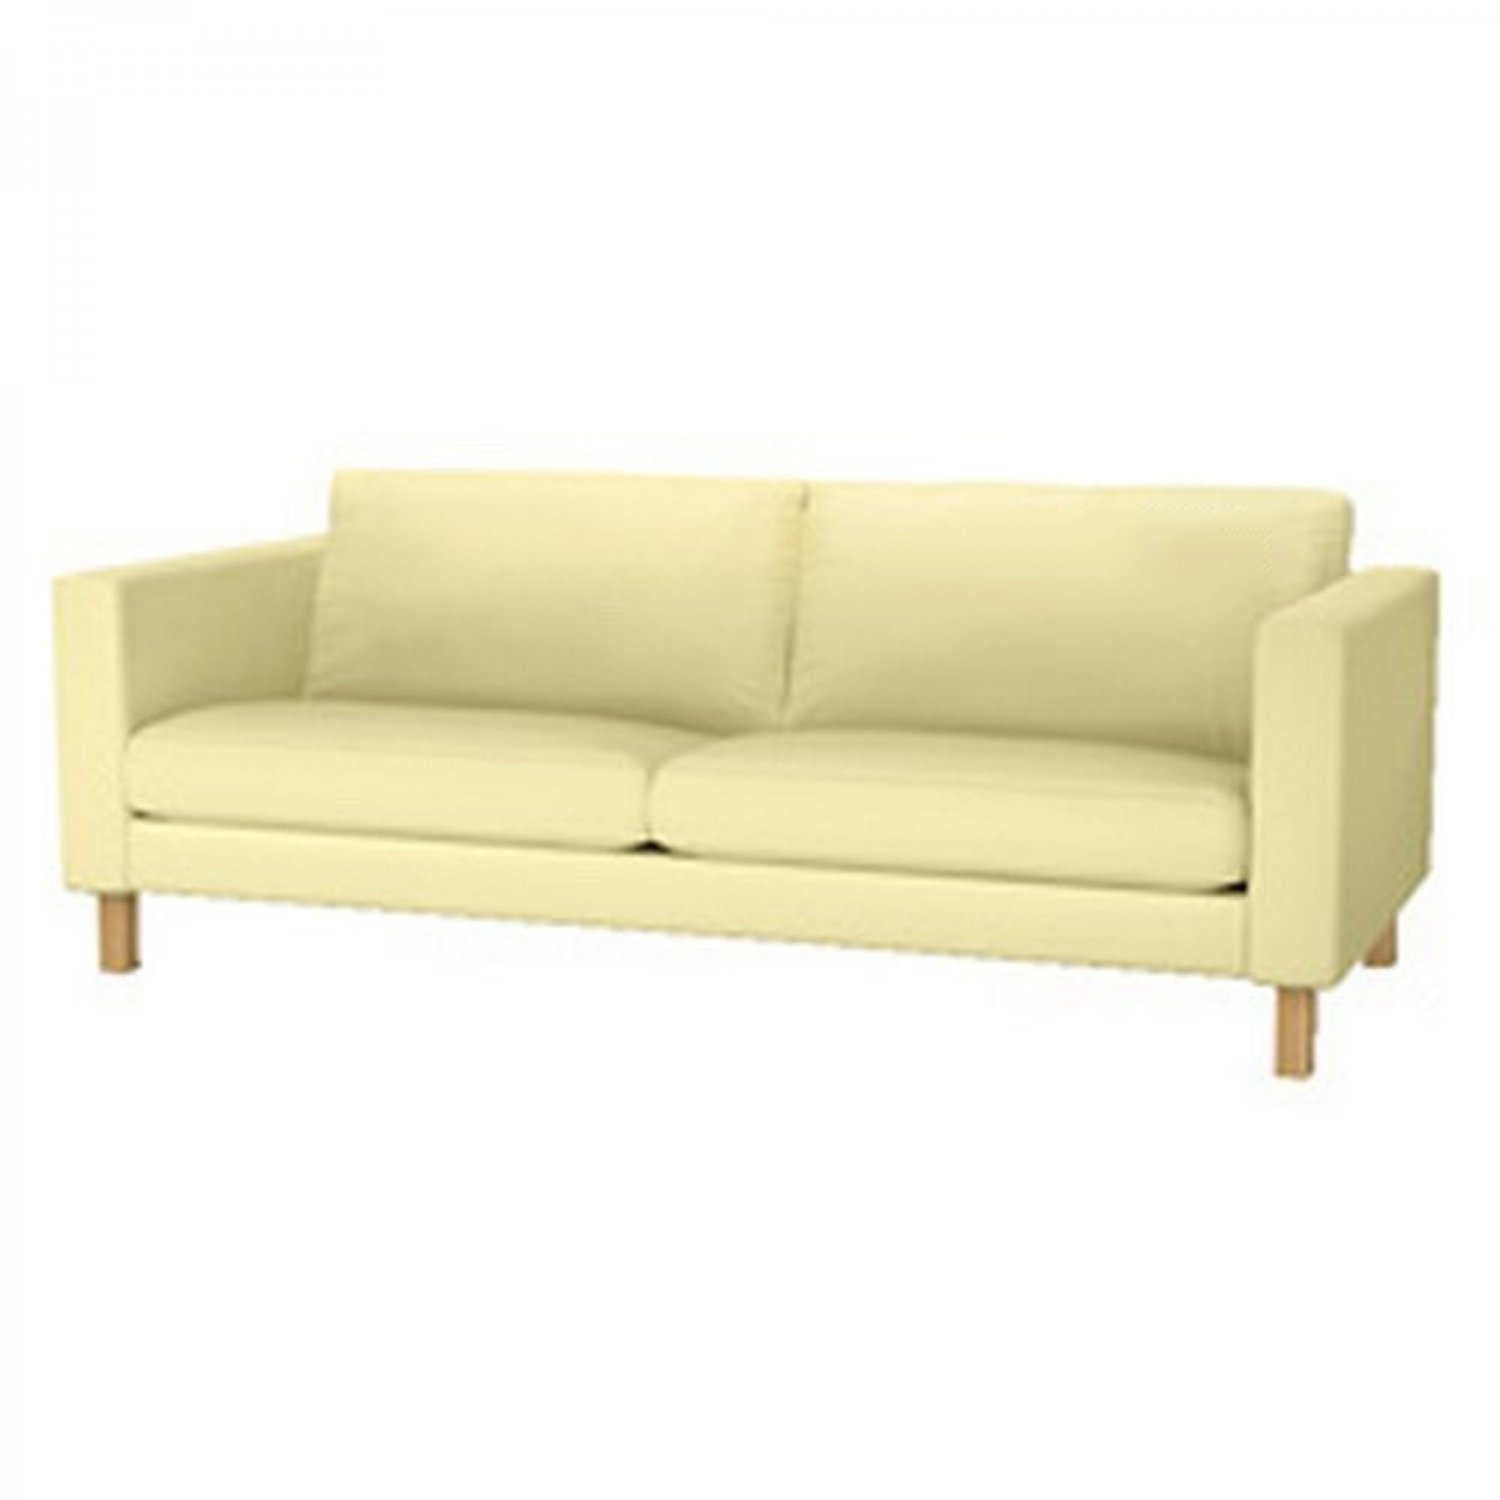 ikea karlstad sofa slipcover cover sivik light yellow 3. Black Bedroom Furniture Sets. Home Design Ideas